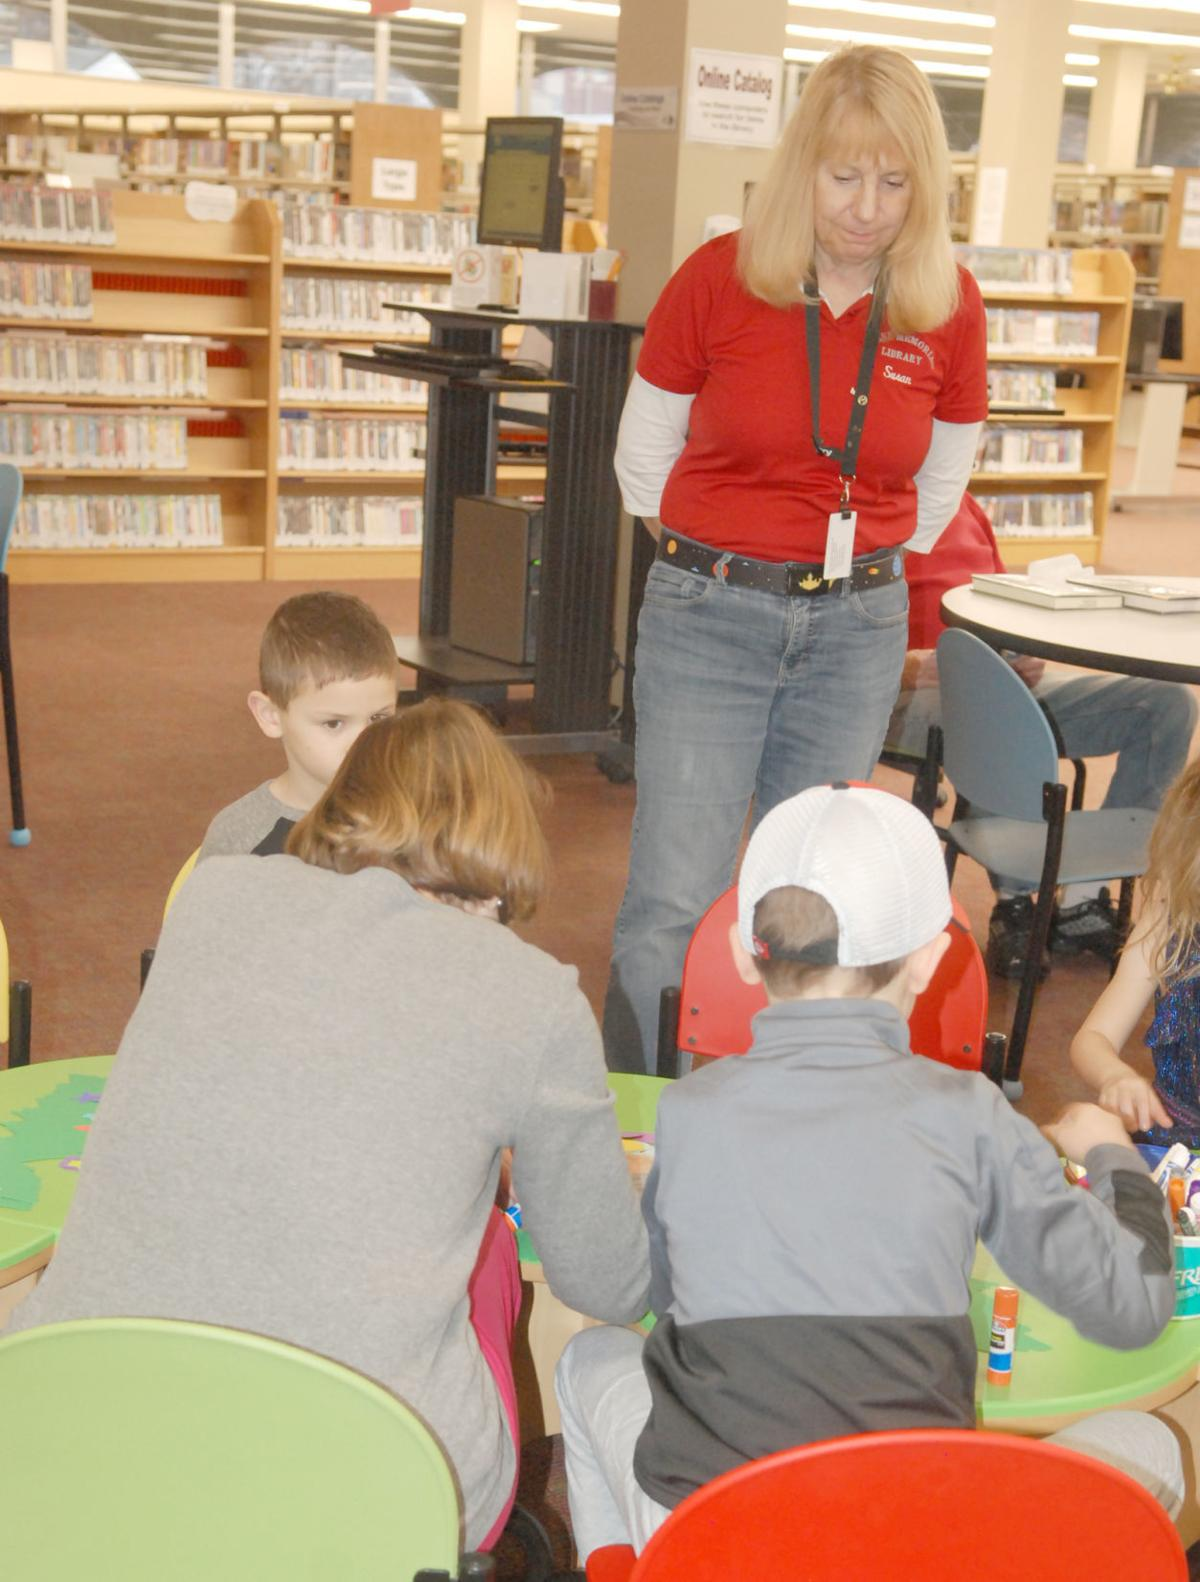 Librarian at table with kids making crafts